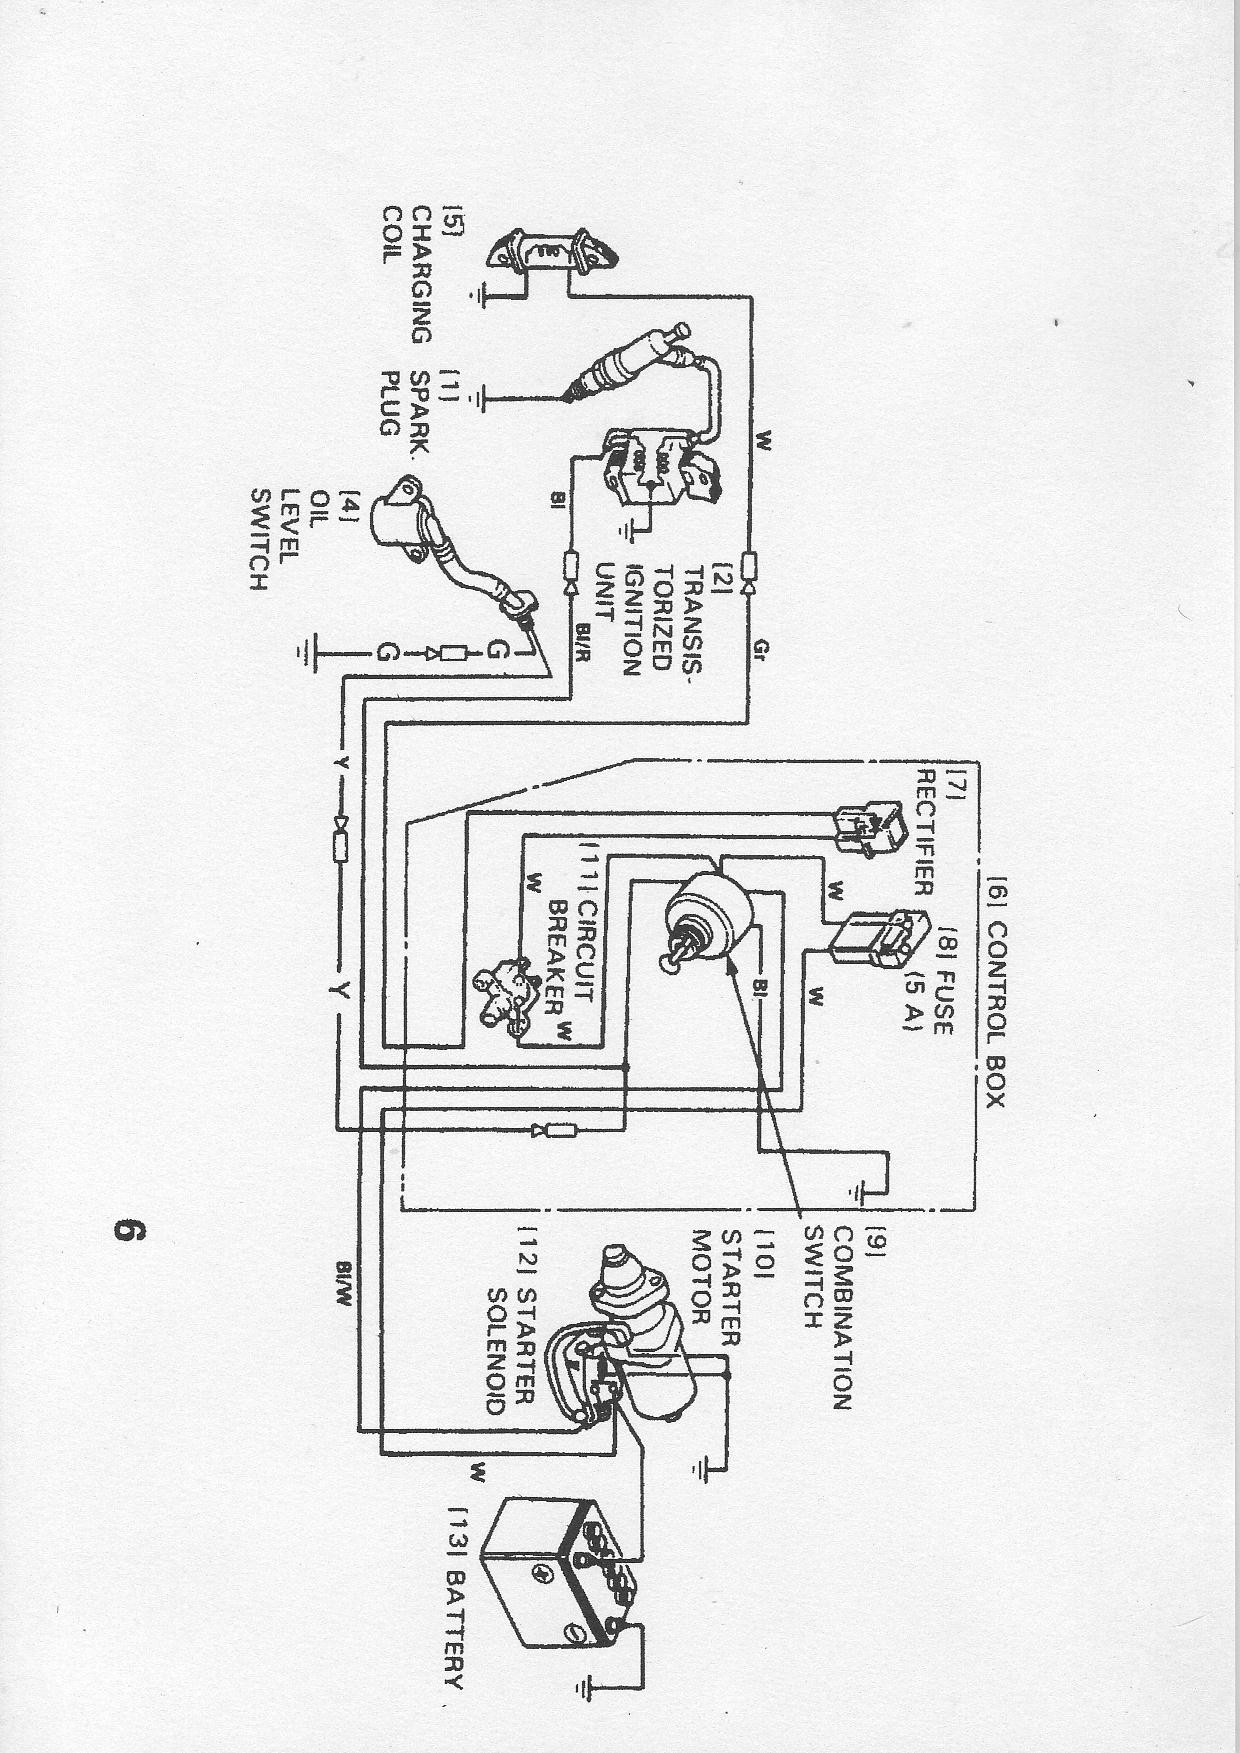 DIAGRAM] Honda Gx620 Ignition Wiring Diagram Wiring Diagram FULL Version HD  Quality Wiring Diagram - ENPHASEWIRINGDIAGRAM.TRIESTELIVE.ITenphasewiringdiagram.triestelive.it